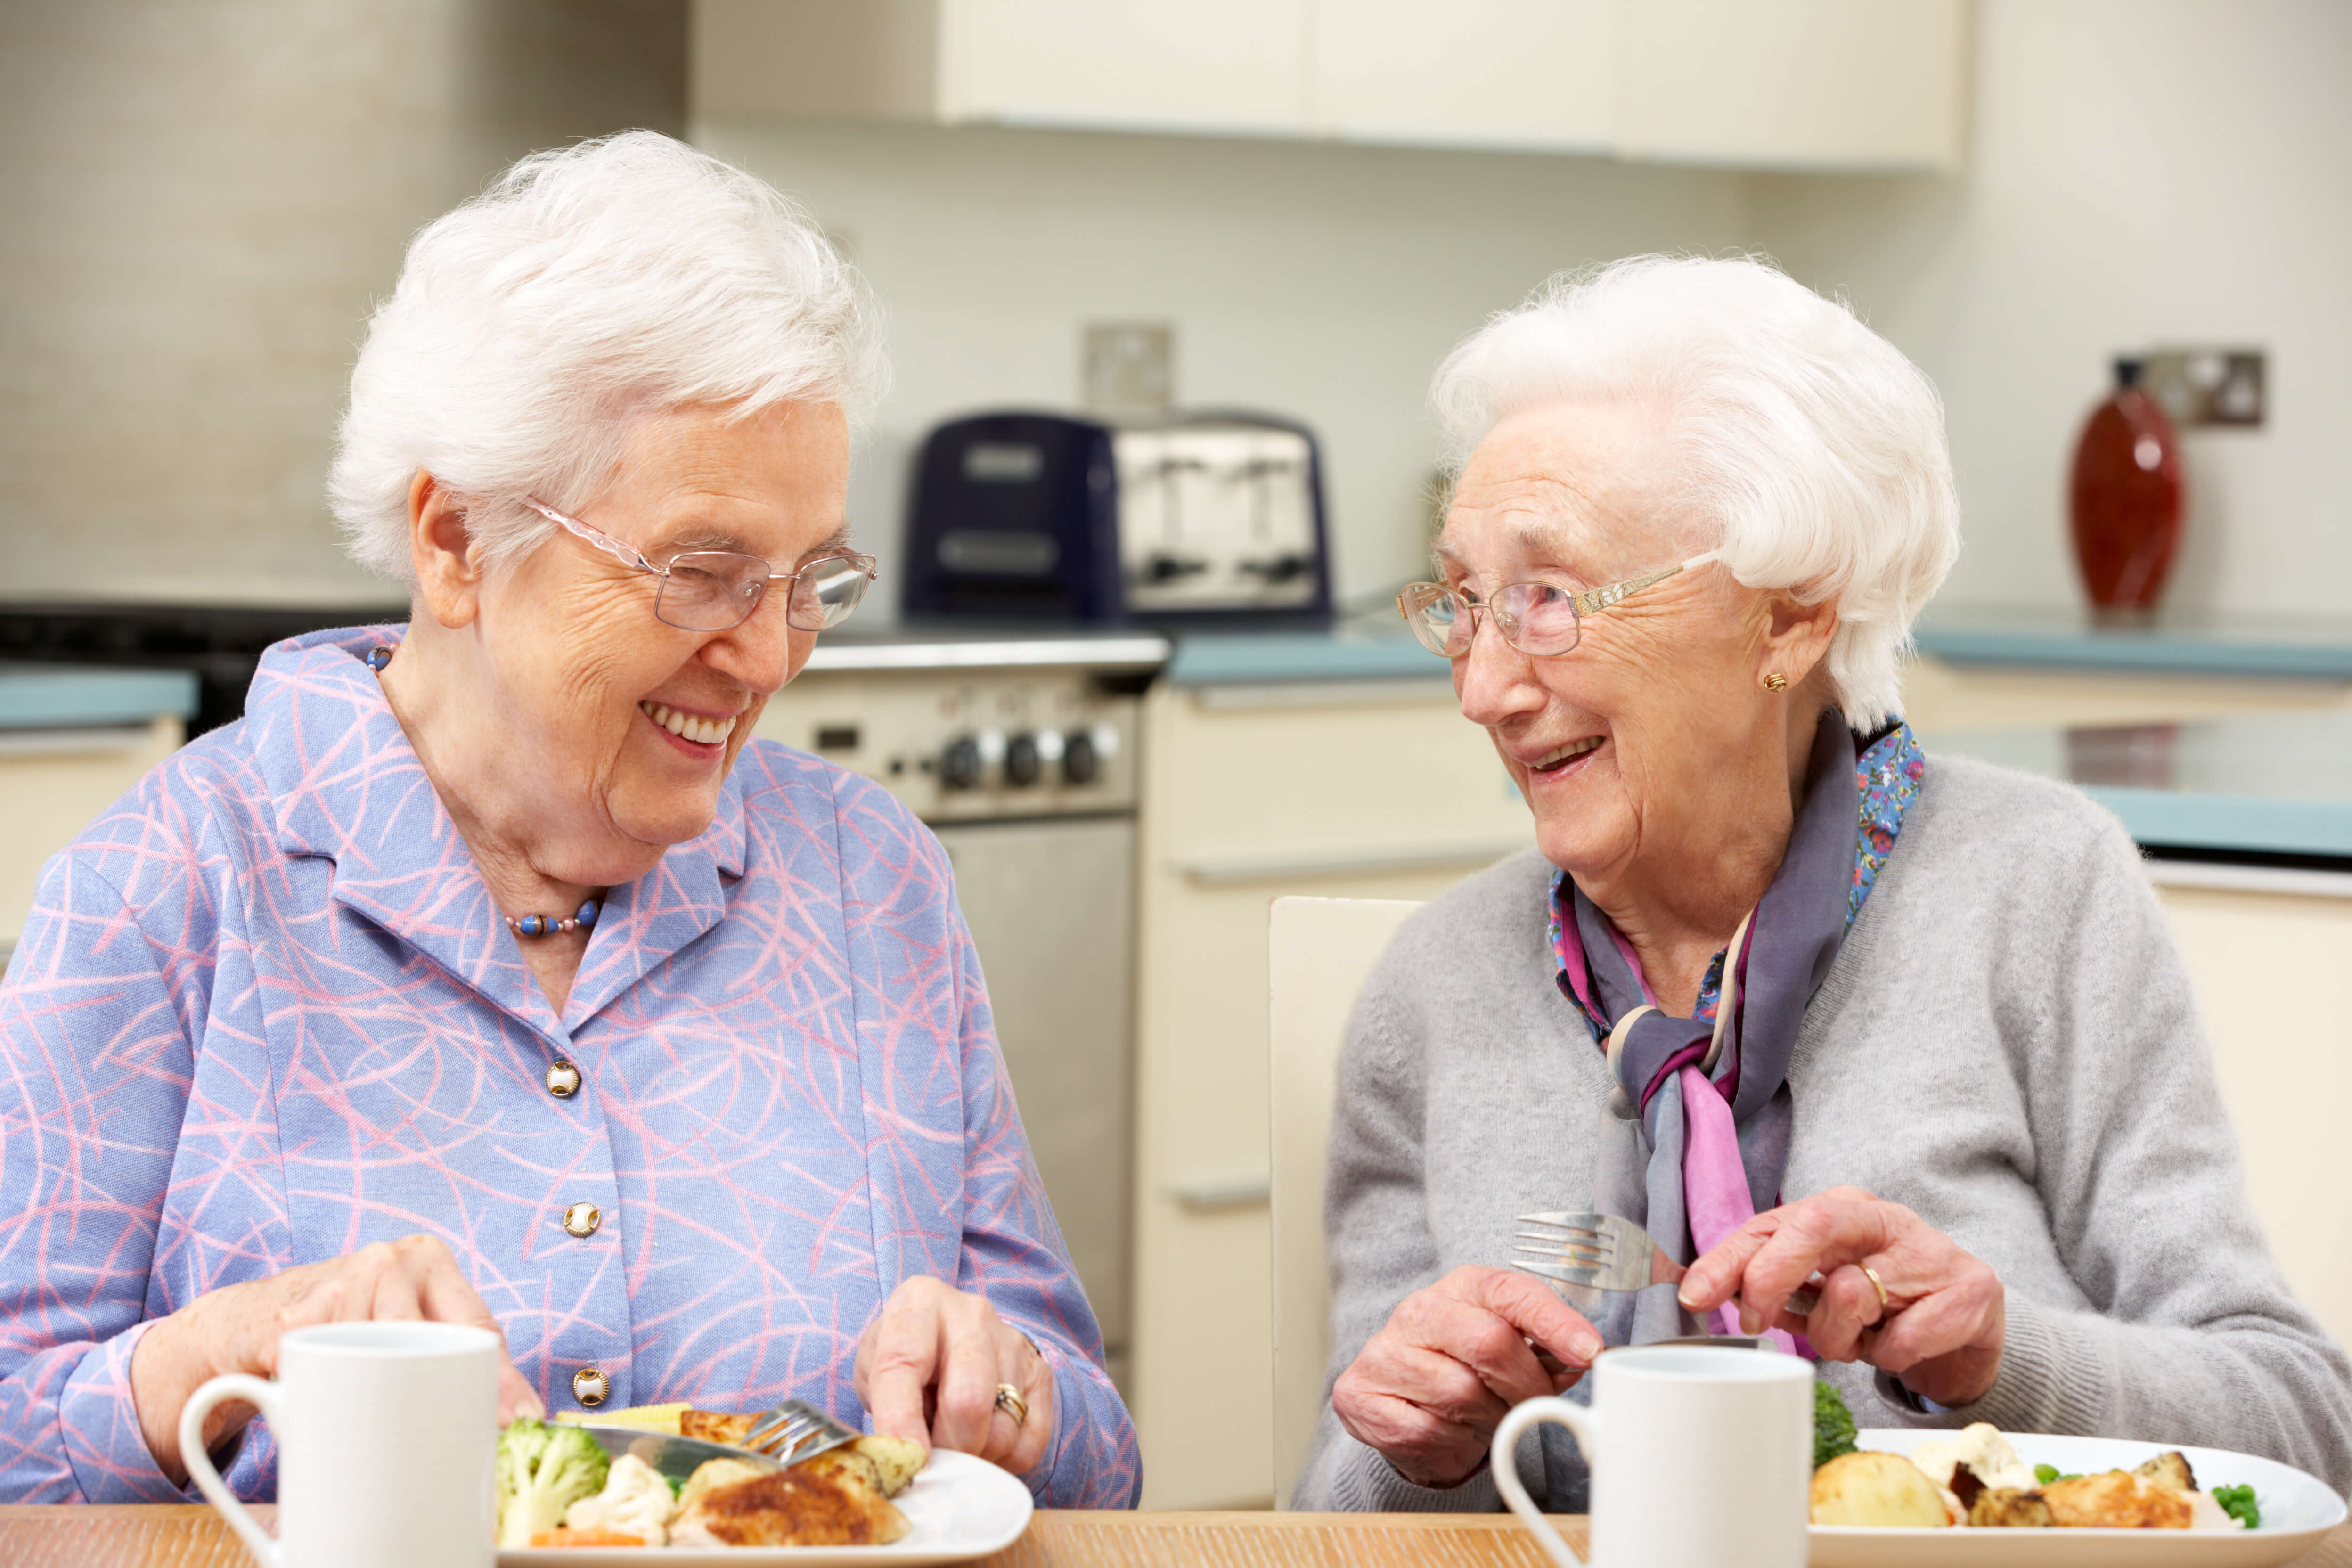 Two elderly ladies laughing together over lunch